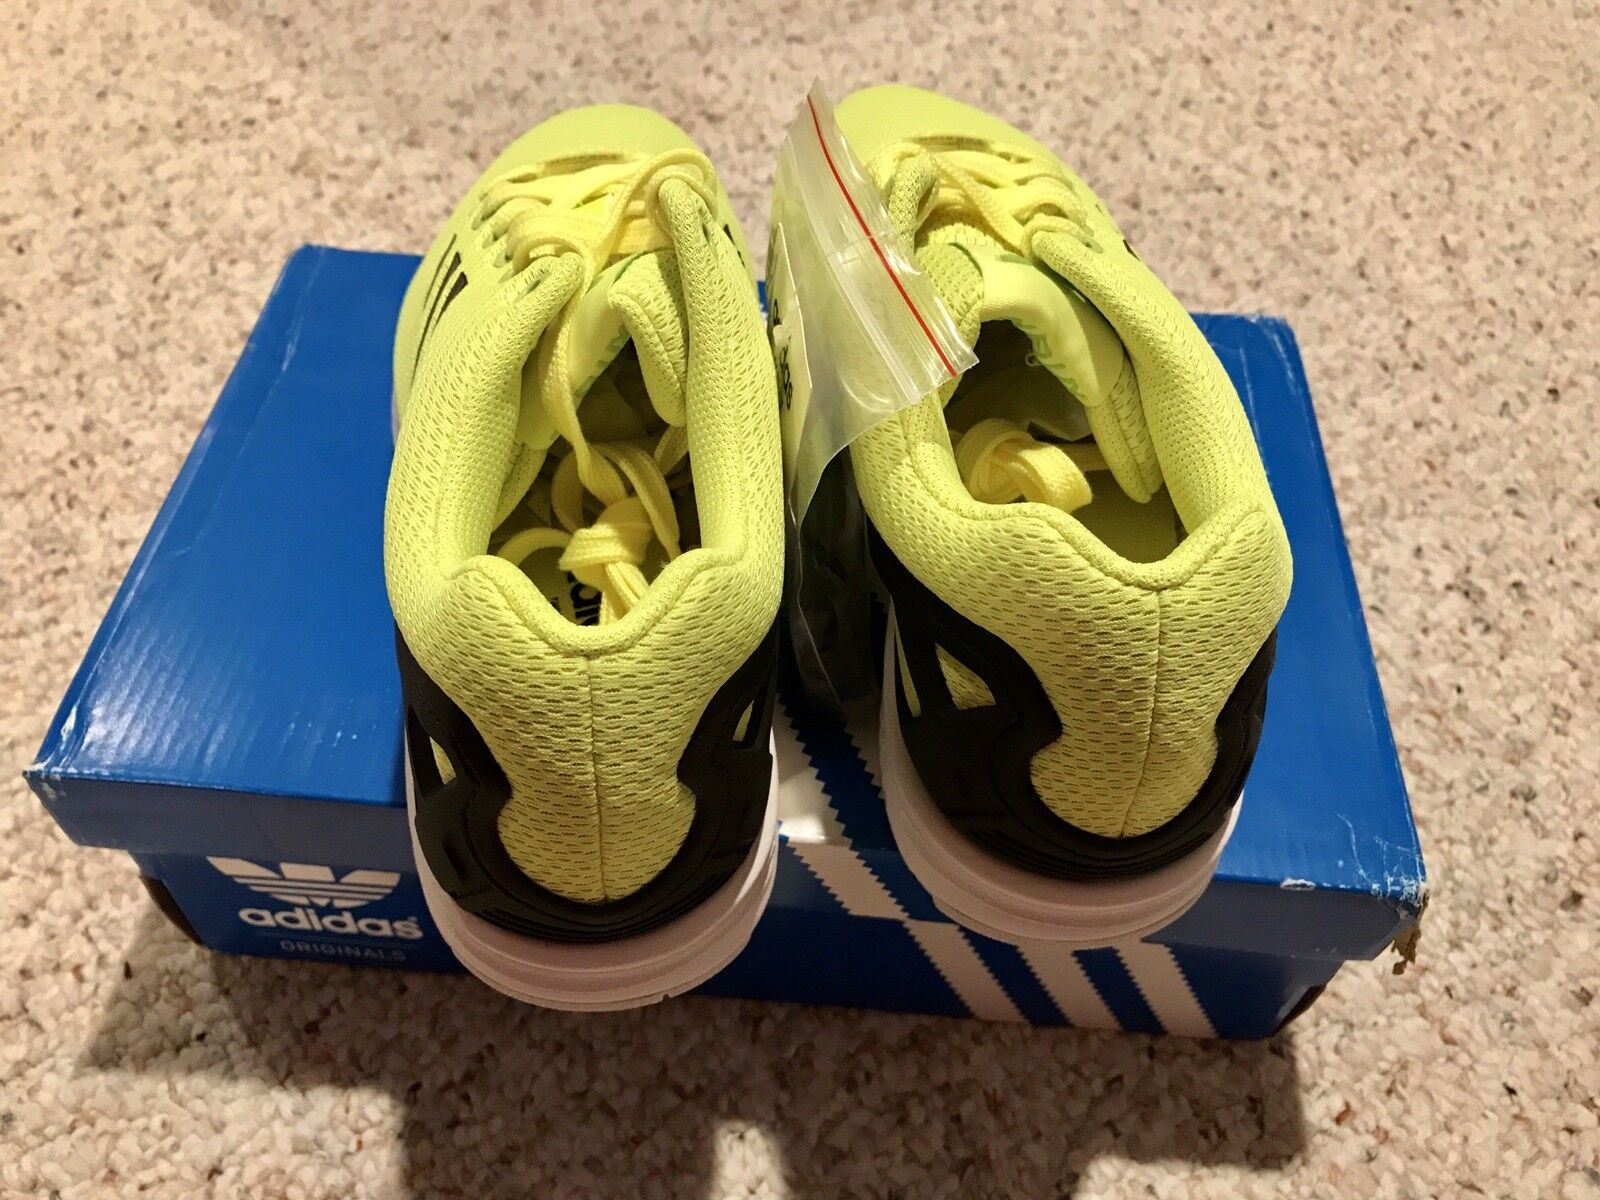 newest d33bc 6d6d8 ... ADIDAS ADIDAS ADIDAS ZX FLUX Electric Yellow Size 8 8171d9 ...